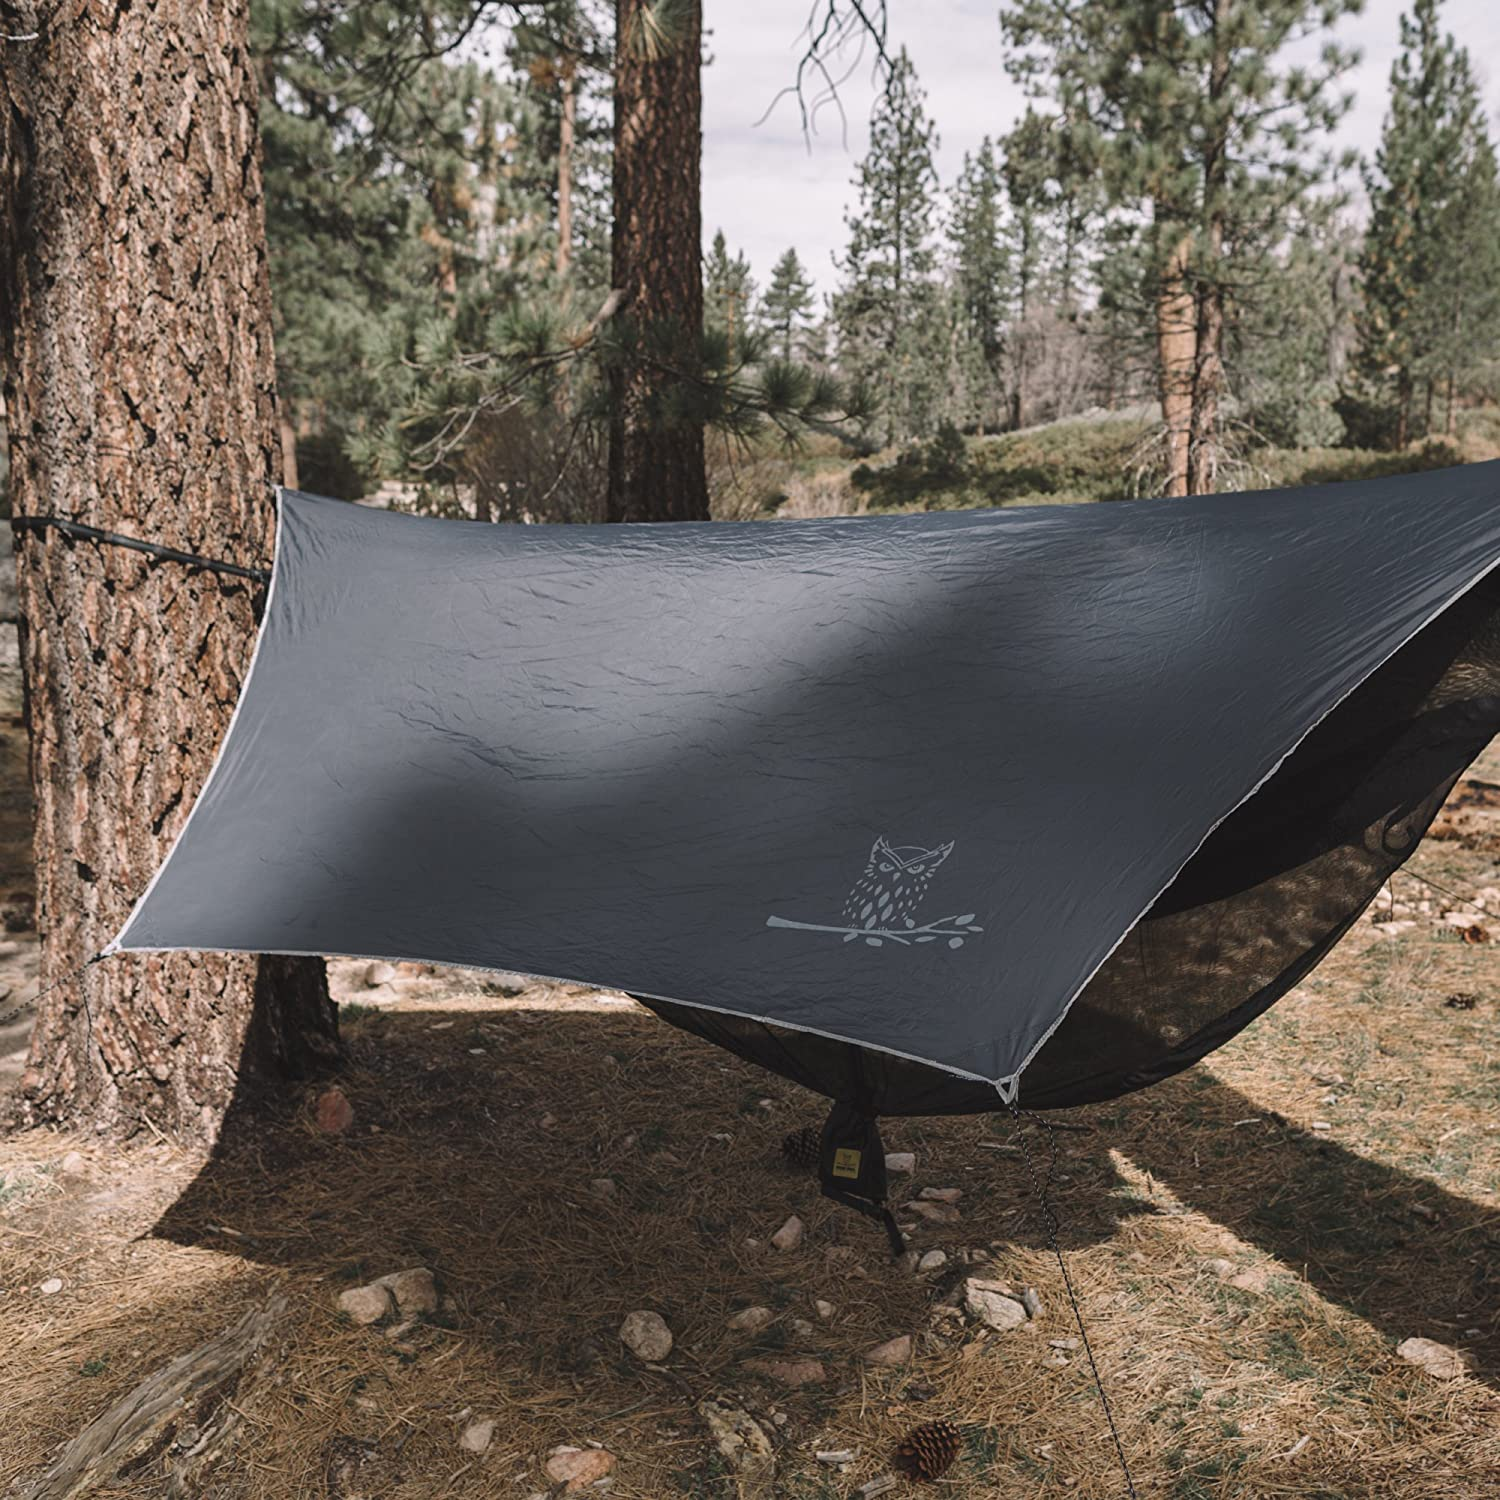 5 Colors The WiseFly Premium 11 x 9 ft Large Hex Waterproof Ripstop Nylon Camping Shelter Canopy Rainfly Wise Owl Outfitters Hammock Rain Fly Tent Tarp Lightweight Camp Gear Accessories